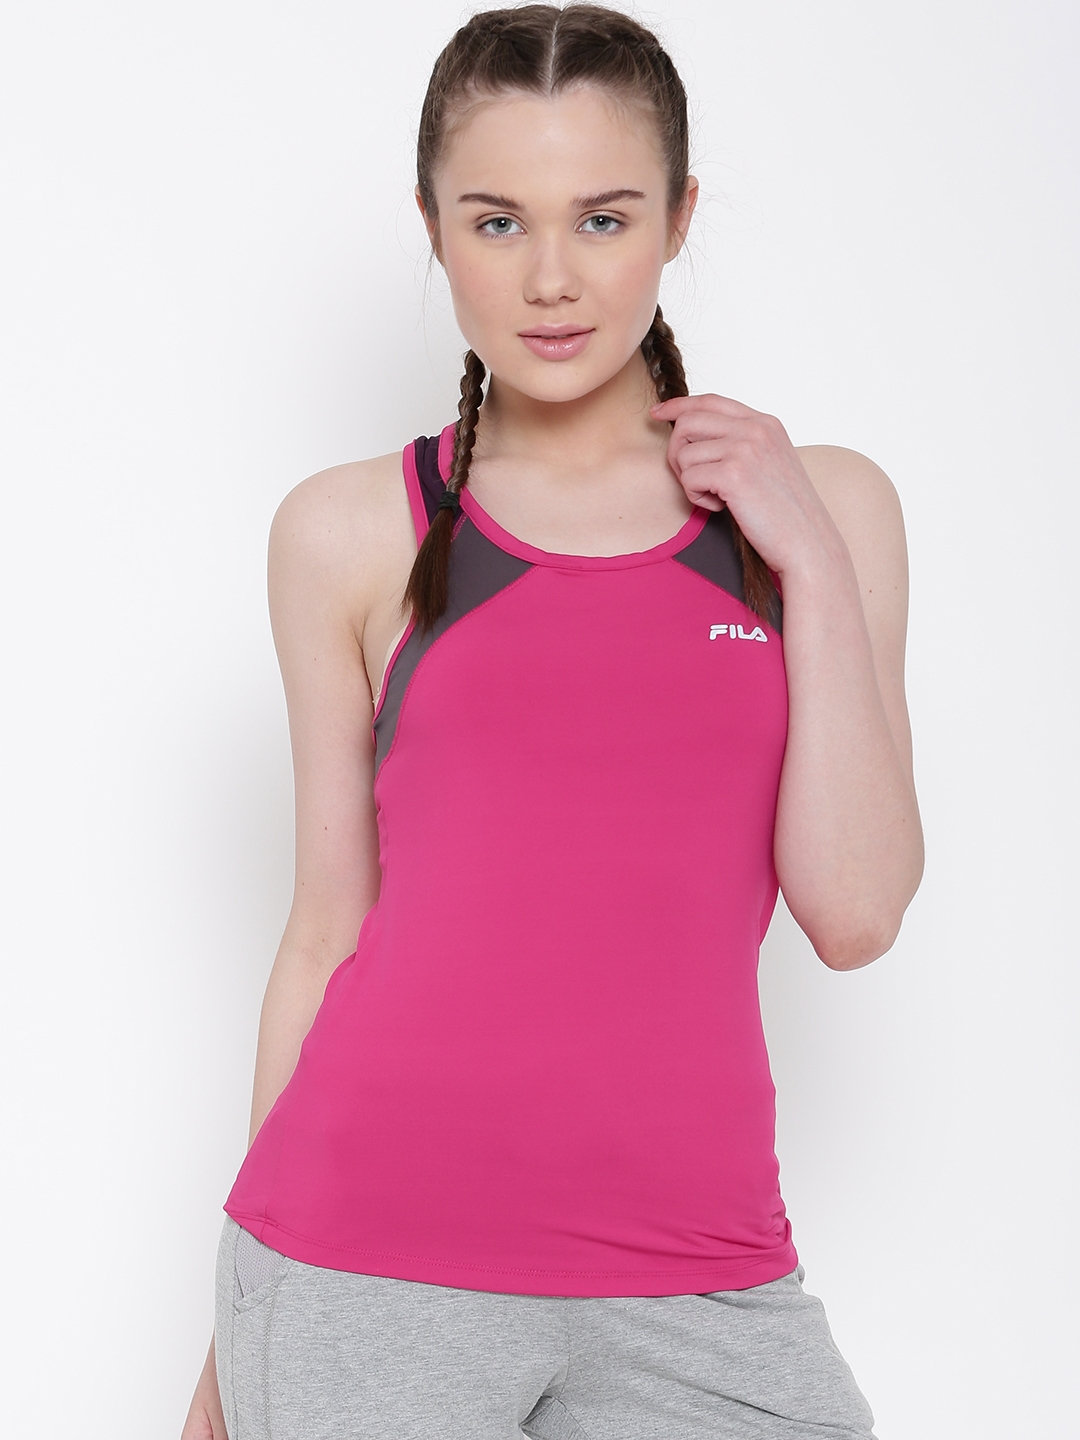 385ad81a01ab8 Buy FILA Pink Selma Panelled Tank Top - Tops for Women 1232021